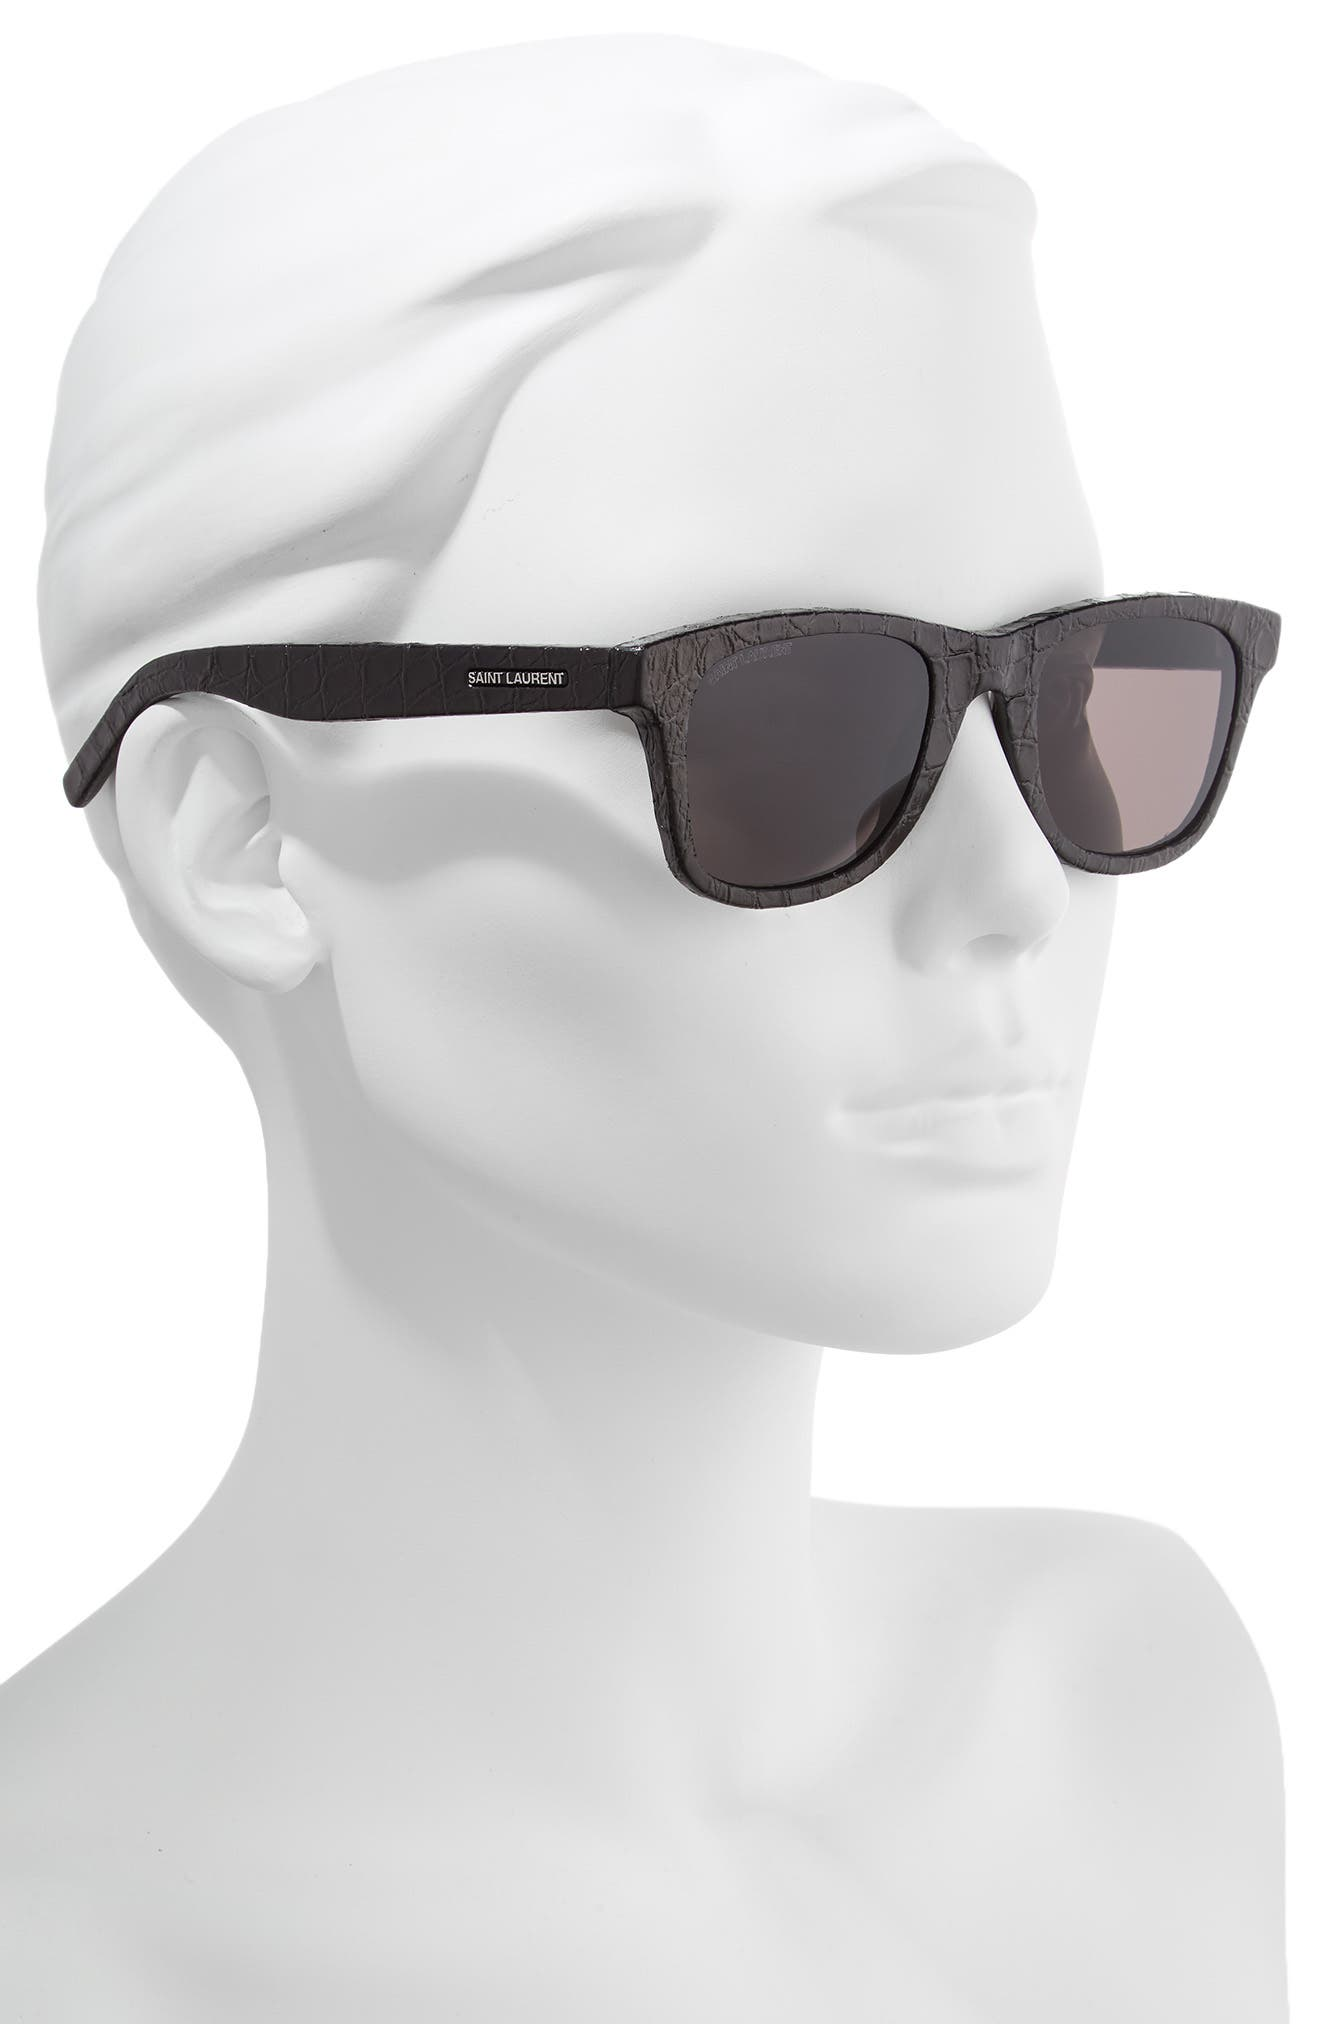 50mm Leather Wrapped Flat Top Sunglasses,                             Alternate thumbnail 2, color,                             BLACK CROCO/ GREY